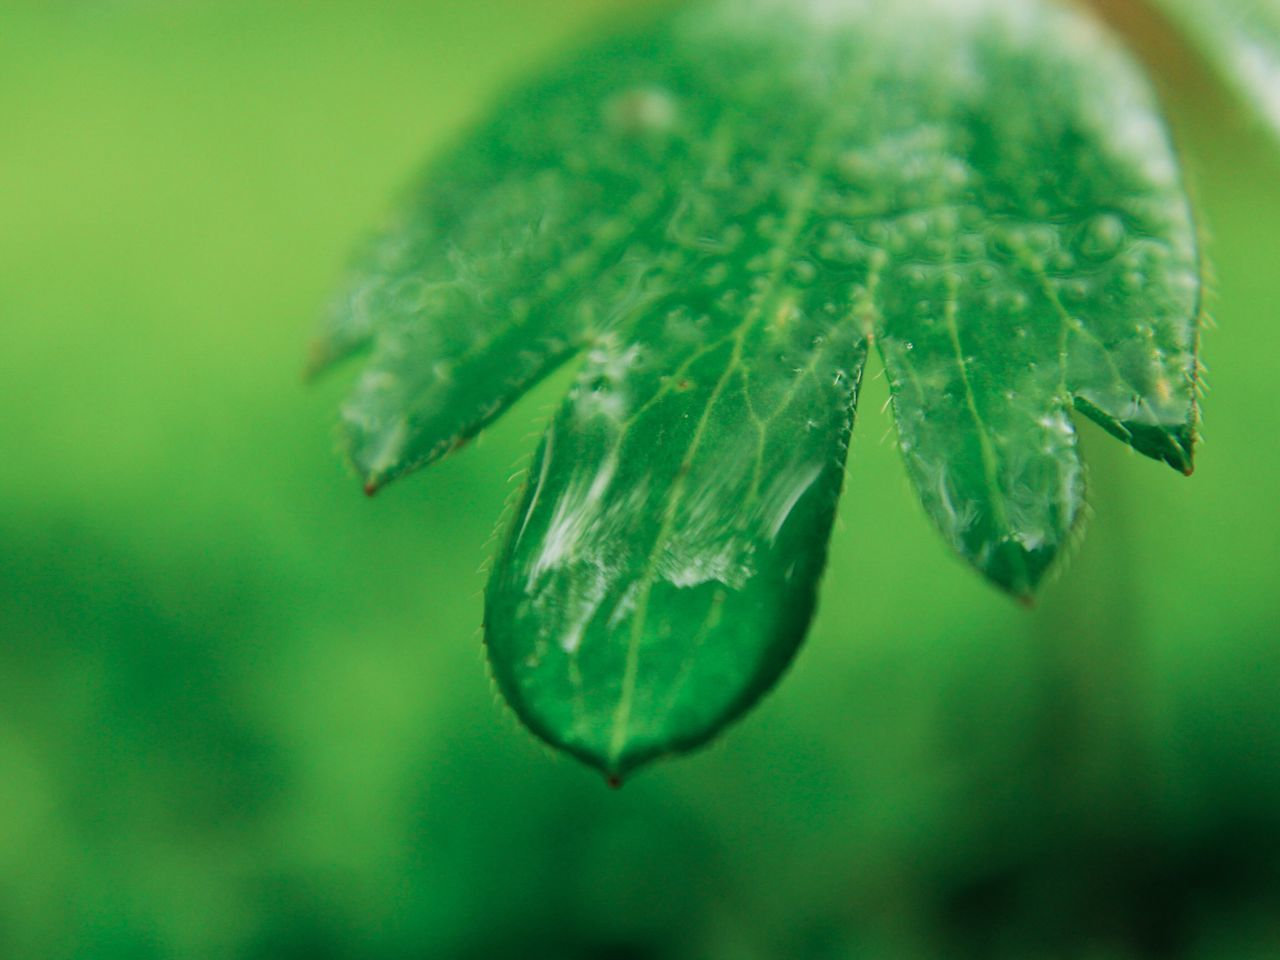 Rain Drop. 💧 Leaf Drop Nature Green Color Close-up Focus On Foreground Beauty In Nature Water Rain Drop Rain Drops On Leaves Macro Plant Tiny Nature Freshness Outdoors Cold Temperature